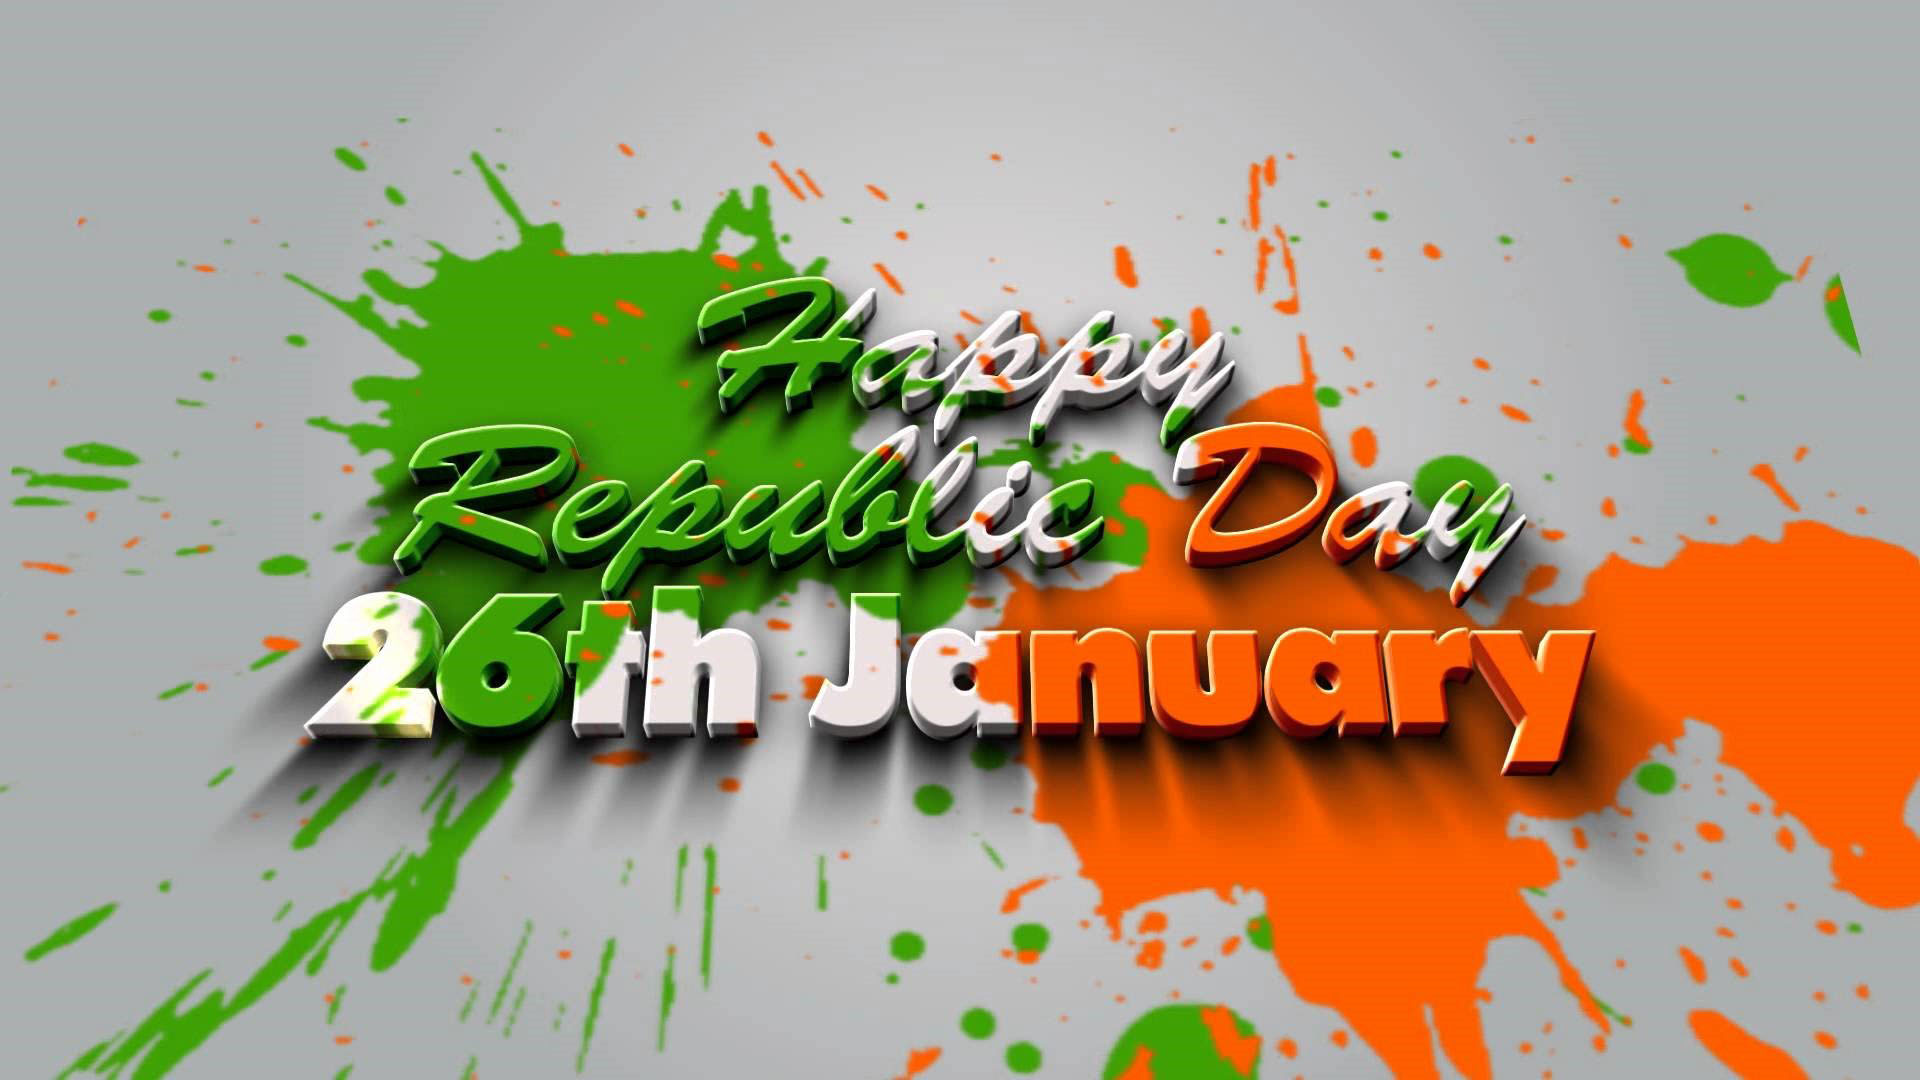 Wallpapers Festival 26 january republic day painting wallpapers 1920x1080